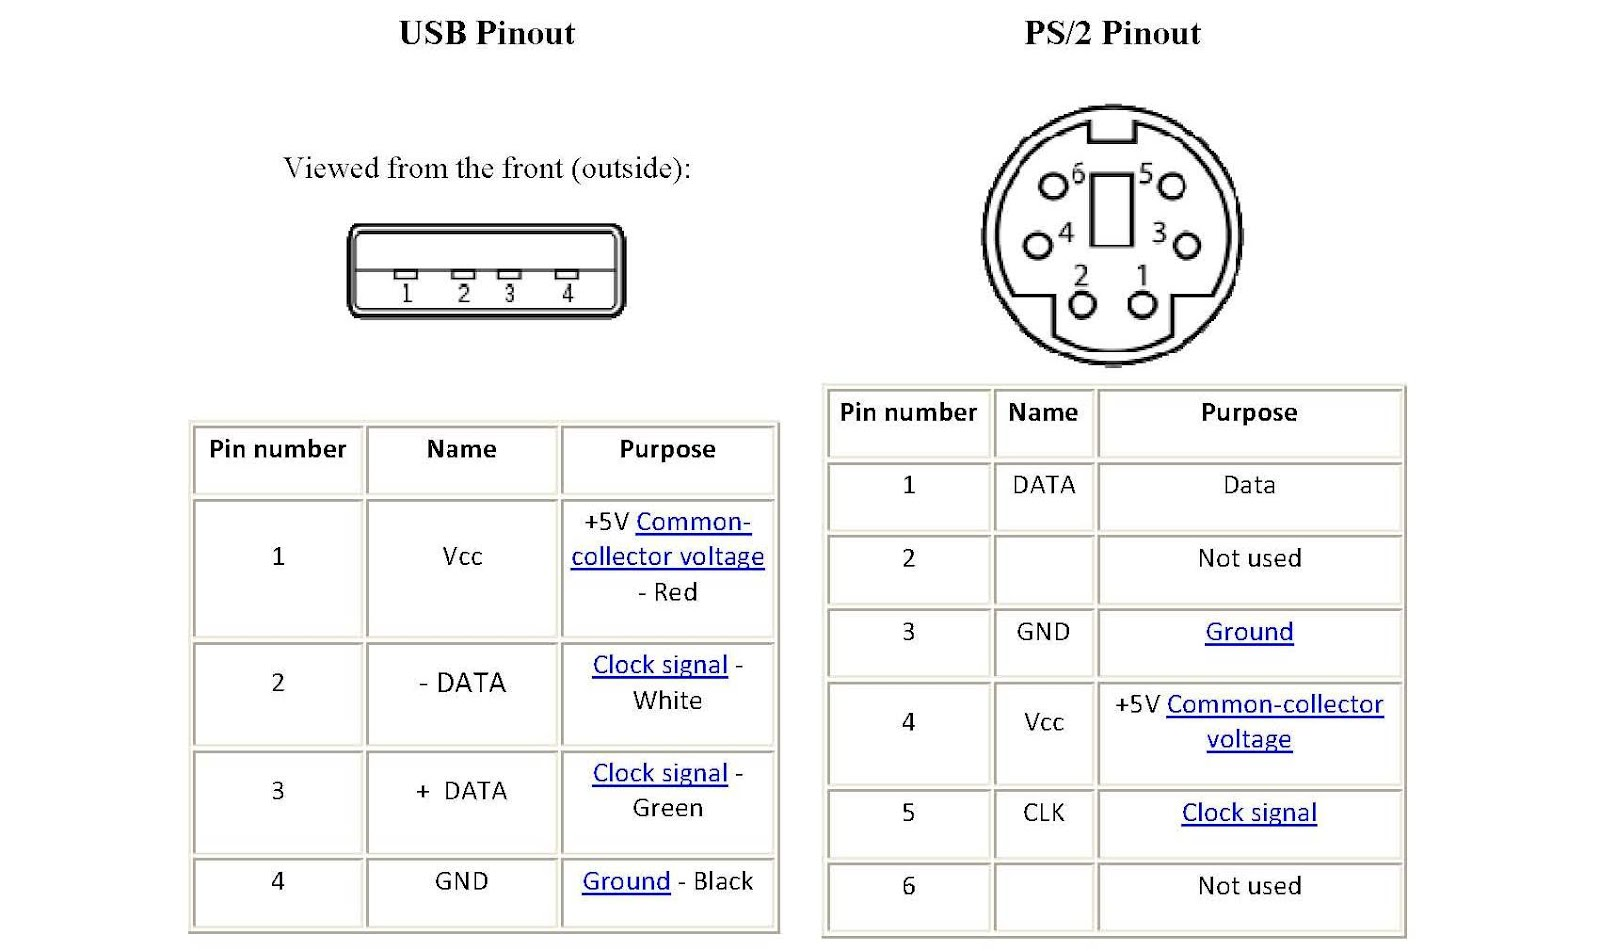 Pleasant Usb Wiring Diagram For A Mouse Basic Electronics Wiring Diagram Wiring Cloud Waroletkolfr09Org